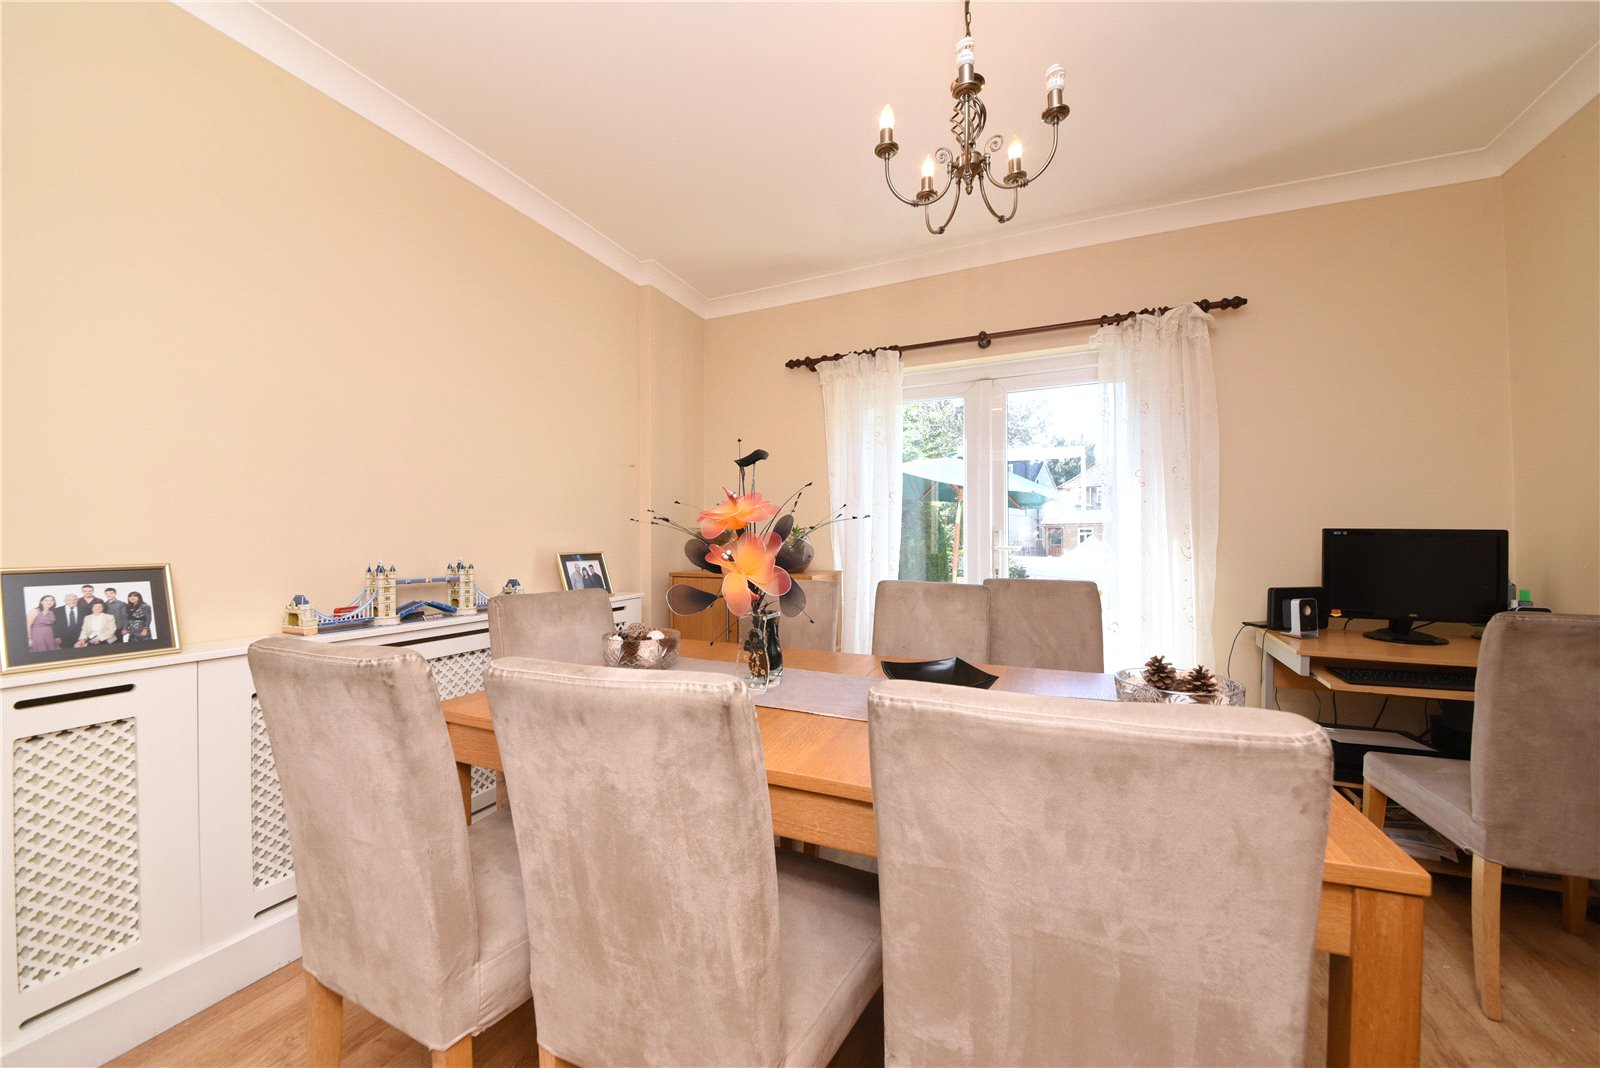 3 bed house for sale in Southgate, N14 4NY  - Property Image 8